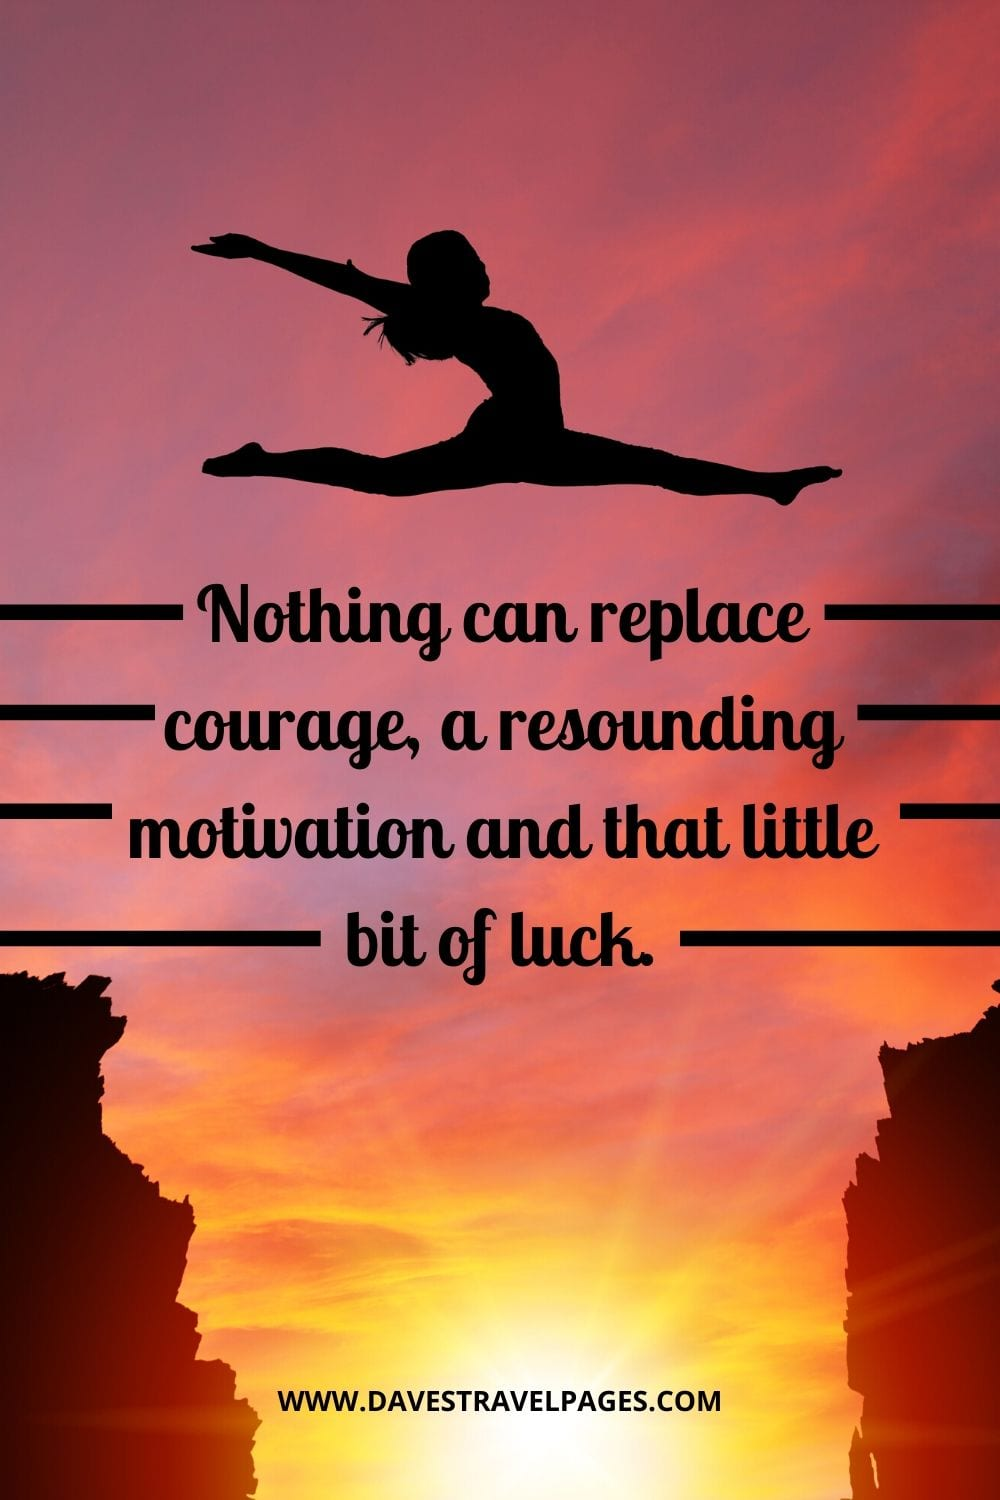 "Quotes about Motivation: ""Nothing can replace courage, a resounding motivation and that little bit of luck."" - Edmund Hillary"